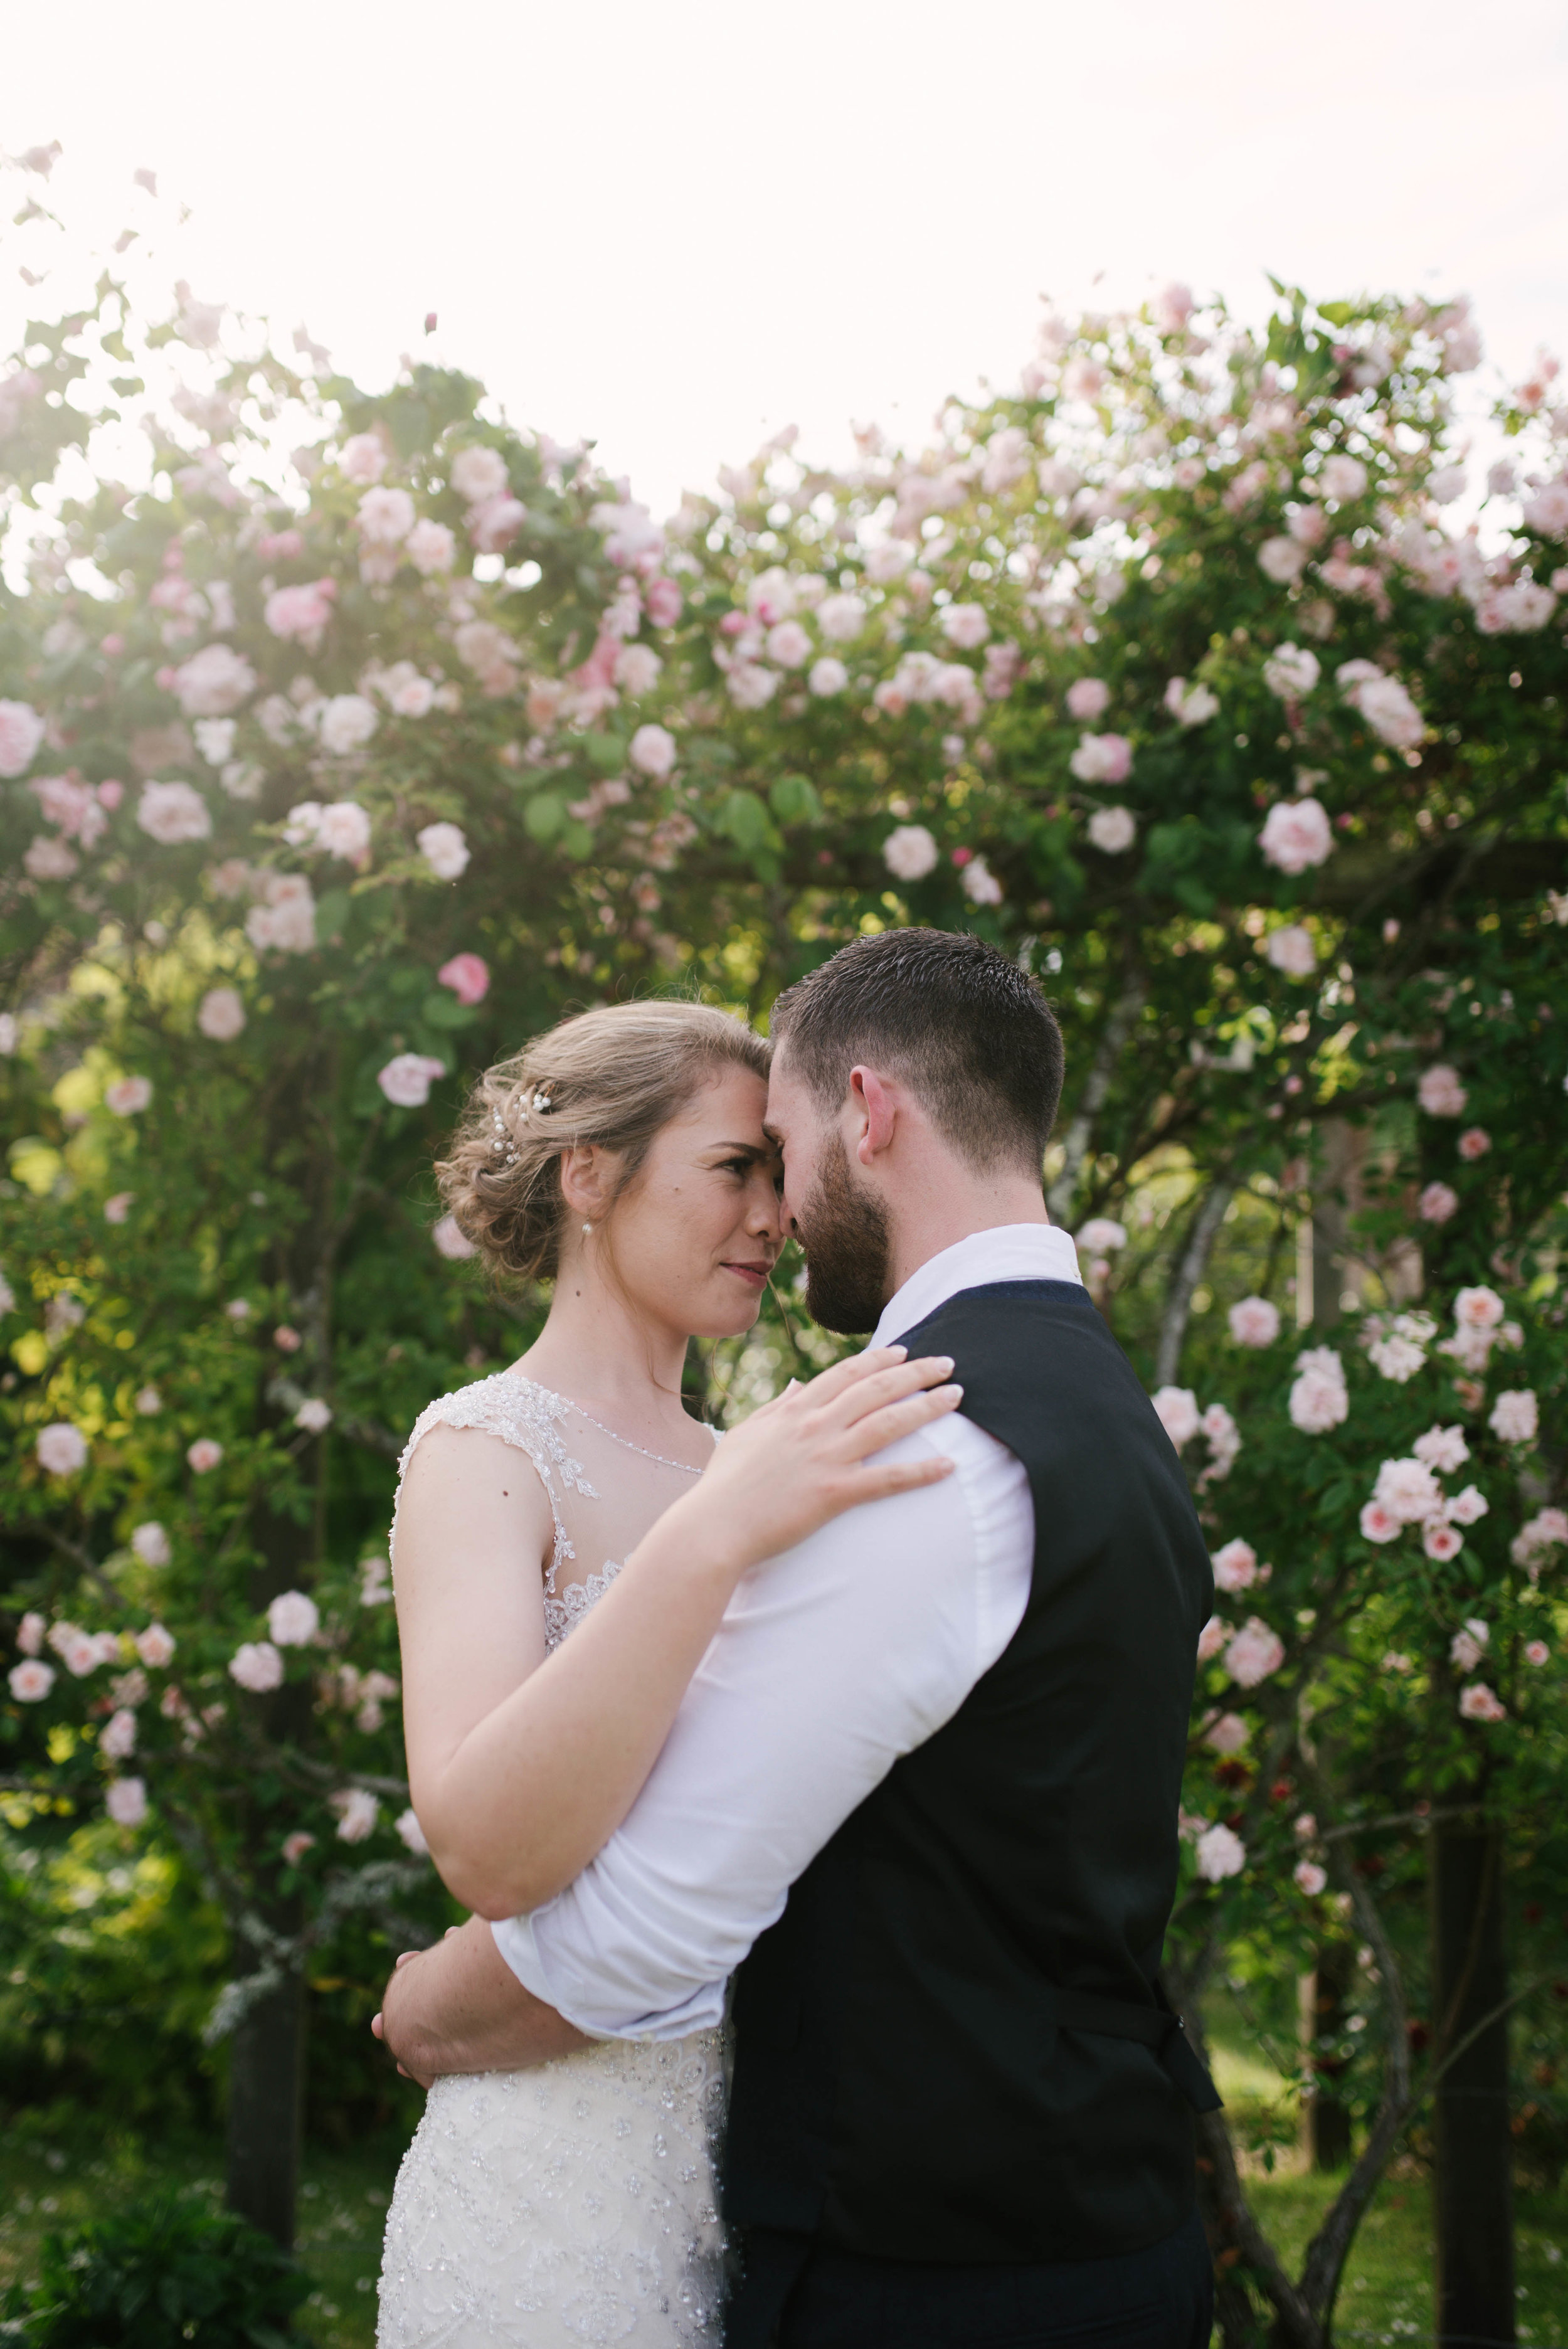 Diamond - 1 Videographer4-6 minute cinematic highlights film20-30 minute cinematic documentary filmSpeeches and ceremony filmed in their entiretyDelivered on USB£1750